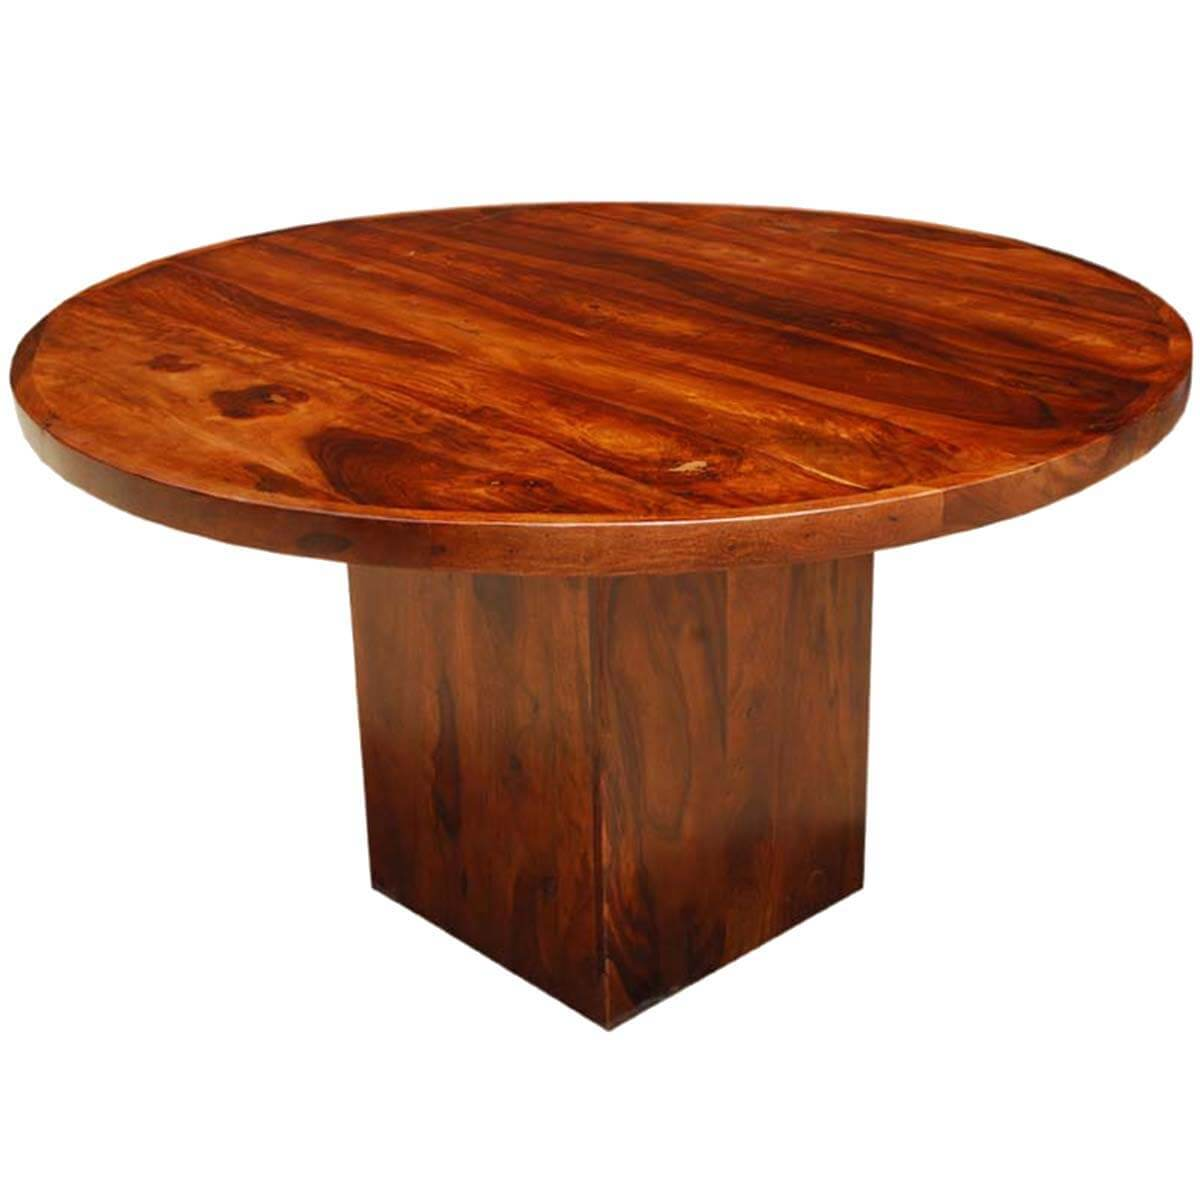 Solid wood rustic round dining table w square pedestal for Pedestal dining table